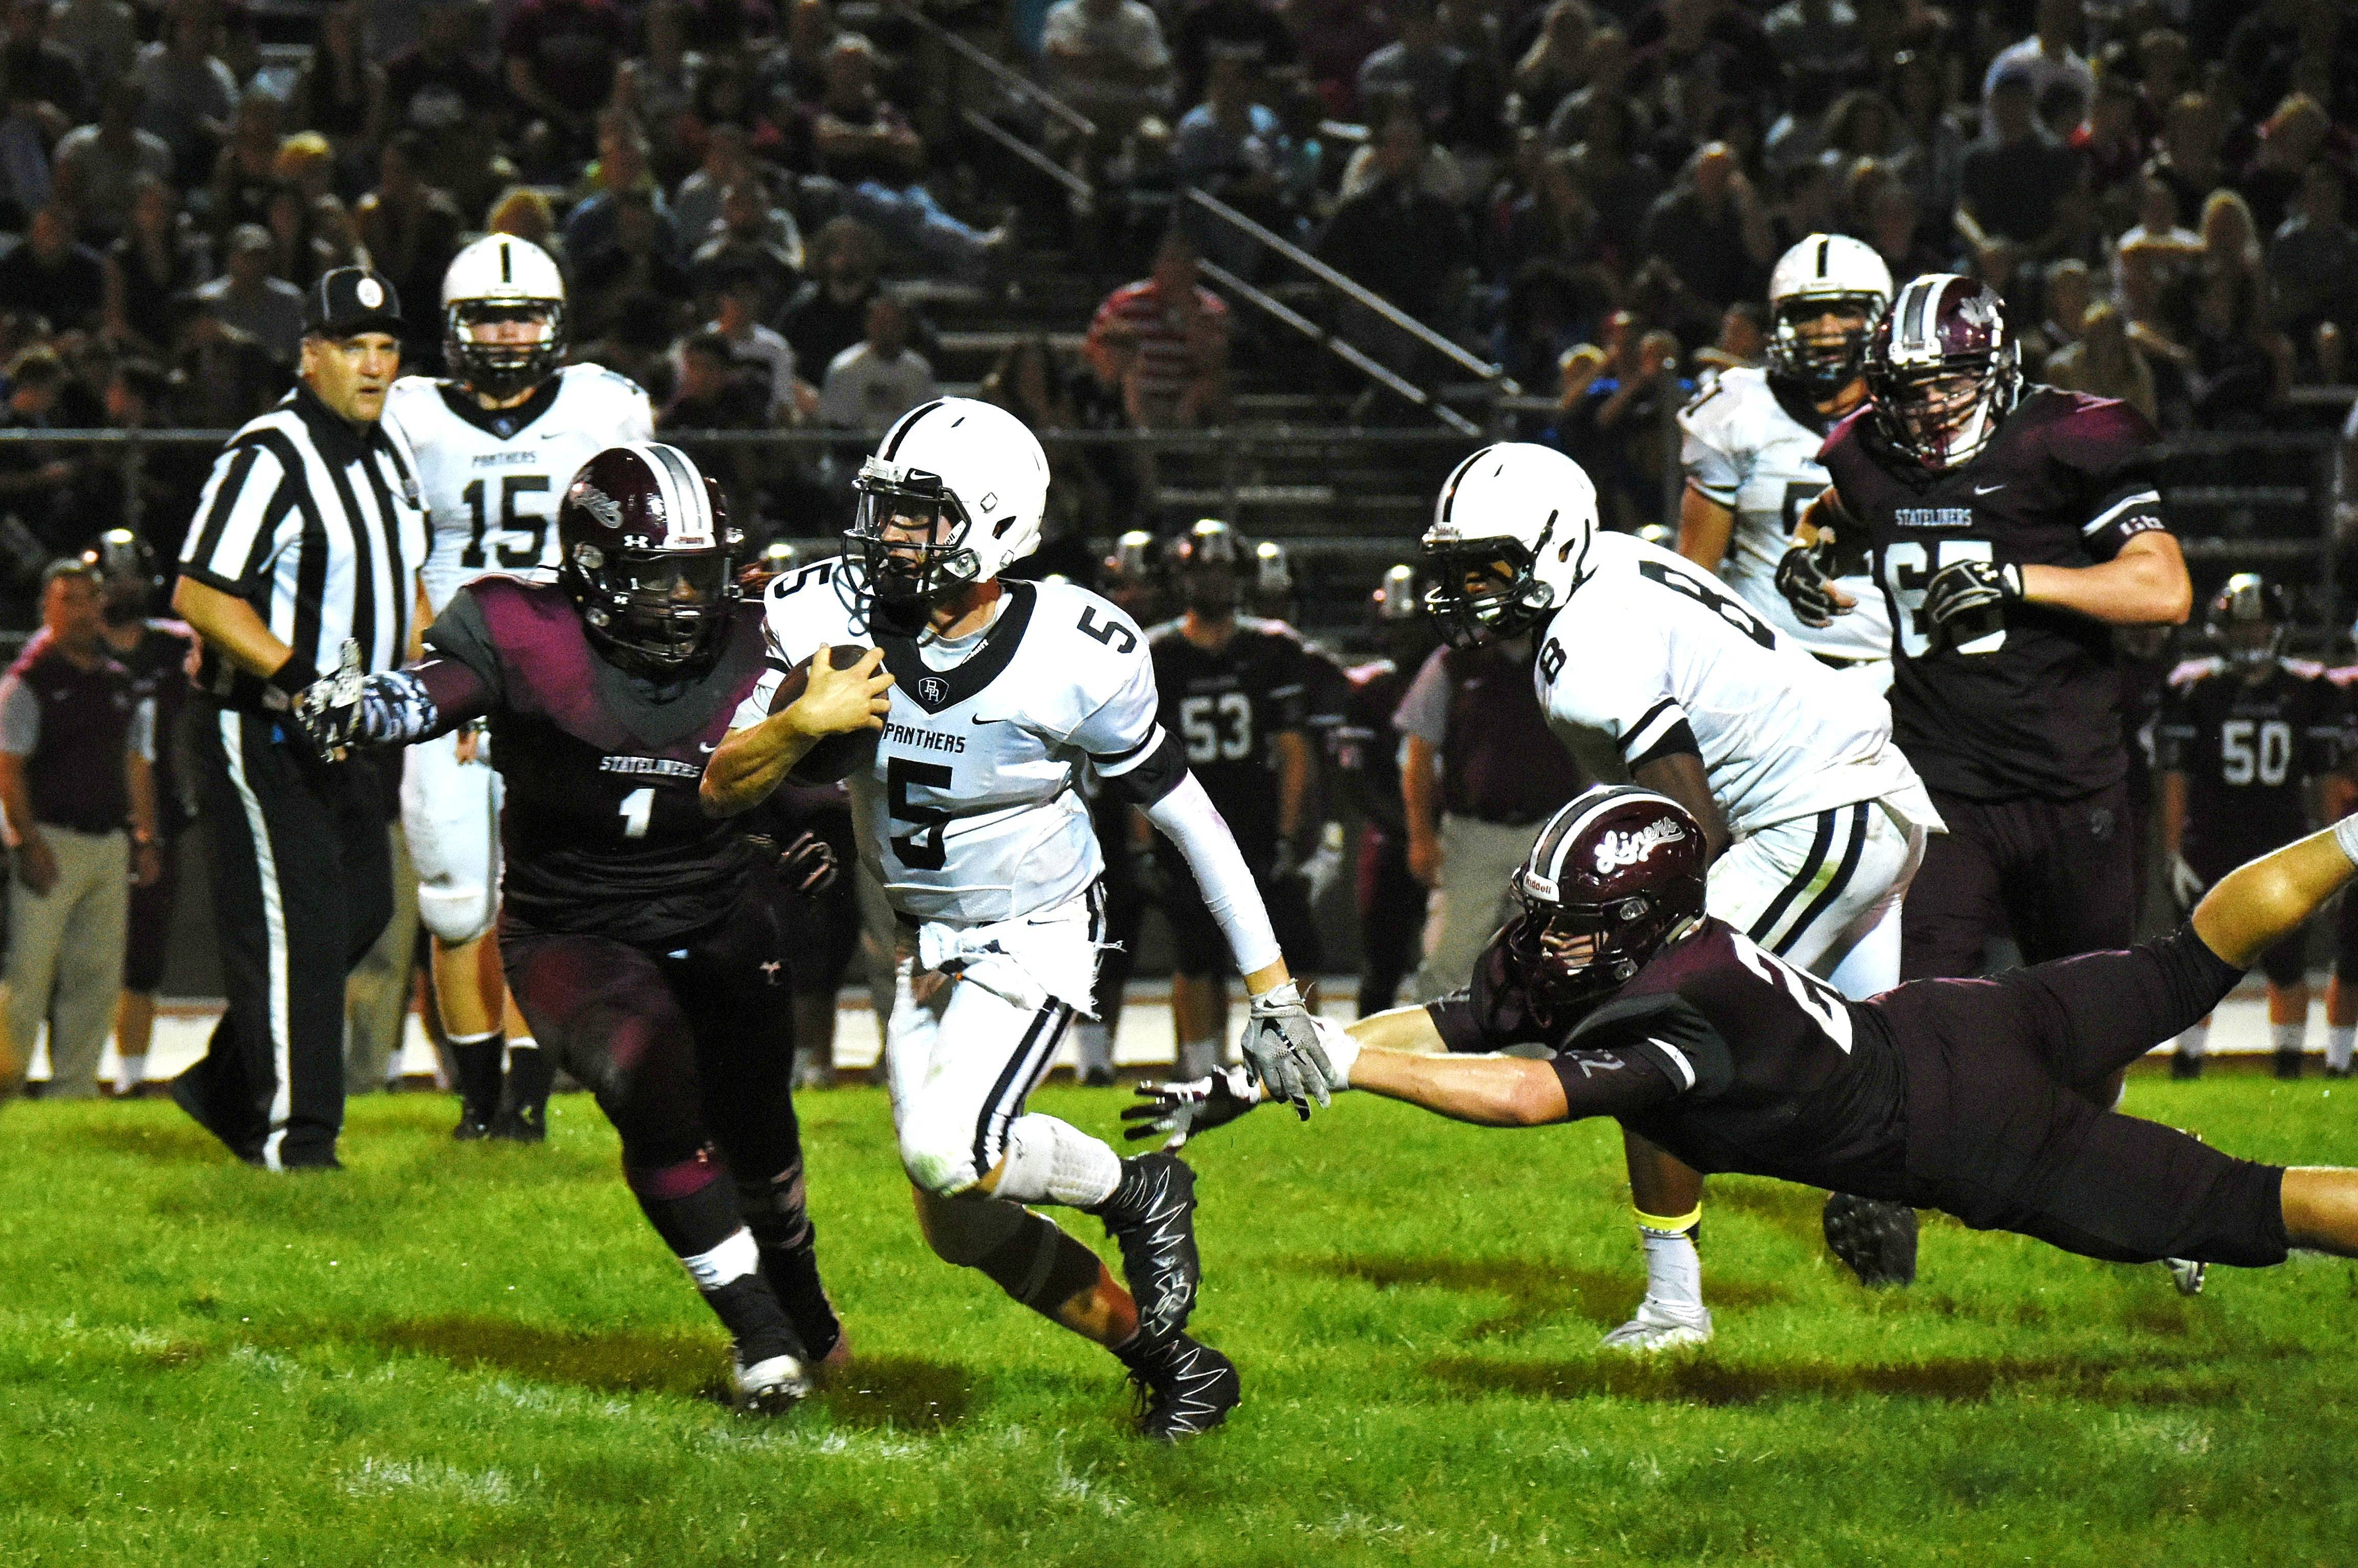 a78c4aa5d7a2a6eda0a1_BR_vs_Phillipsburg_game_3__9-23-16_072.JPG